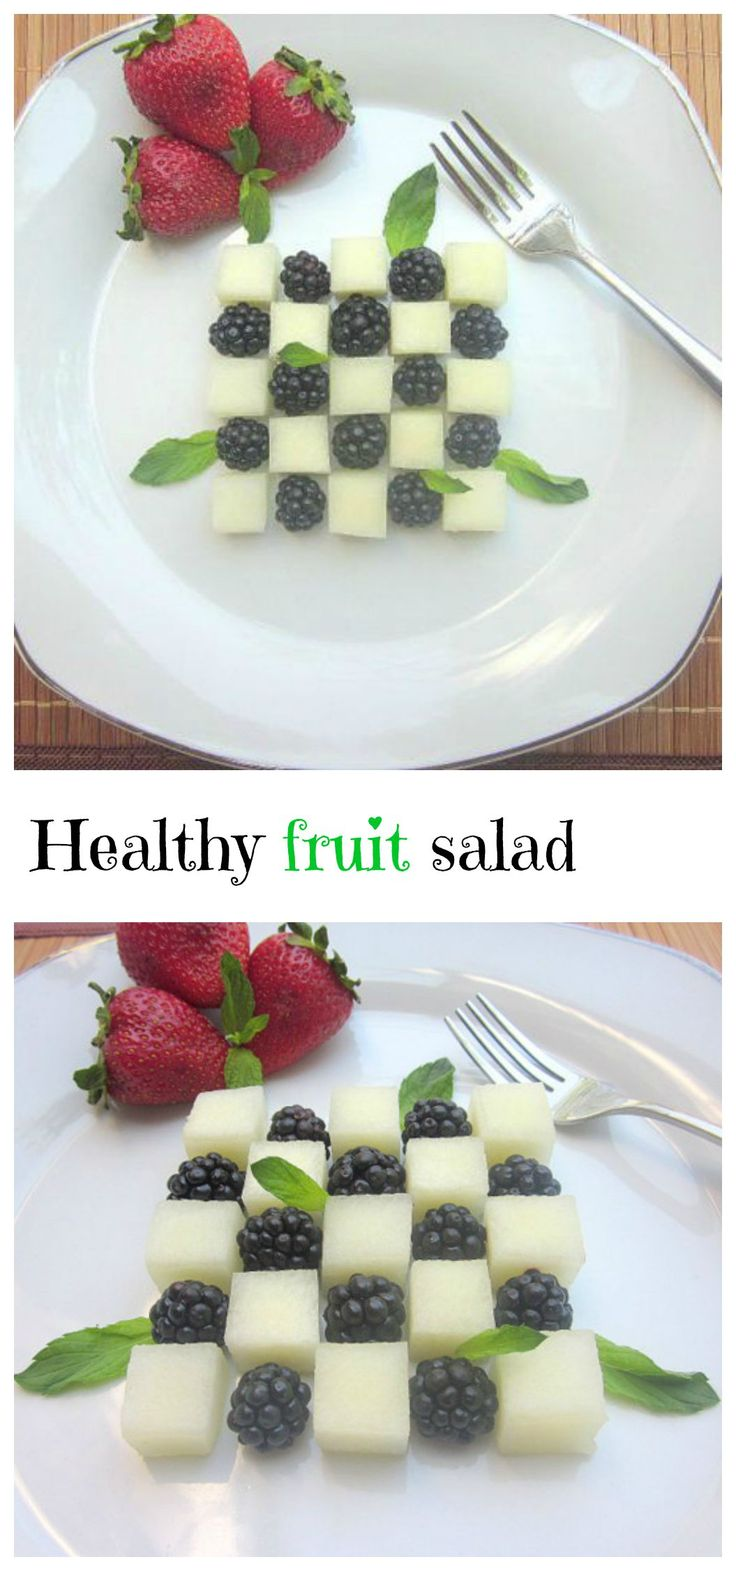 There is nothing better than a fresh, light, healthy salad on a hot, summer day.